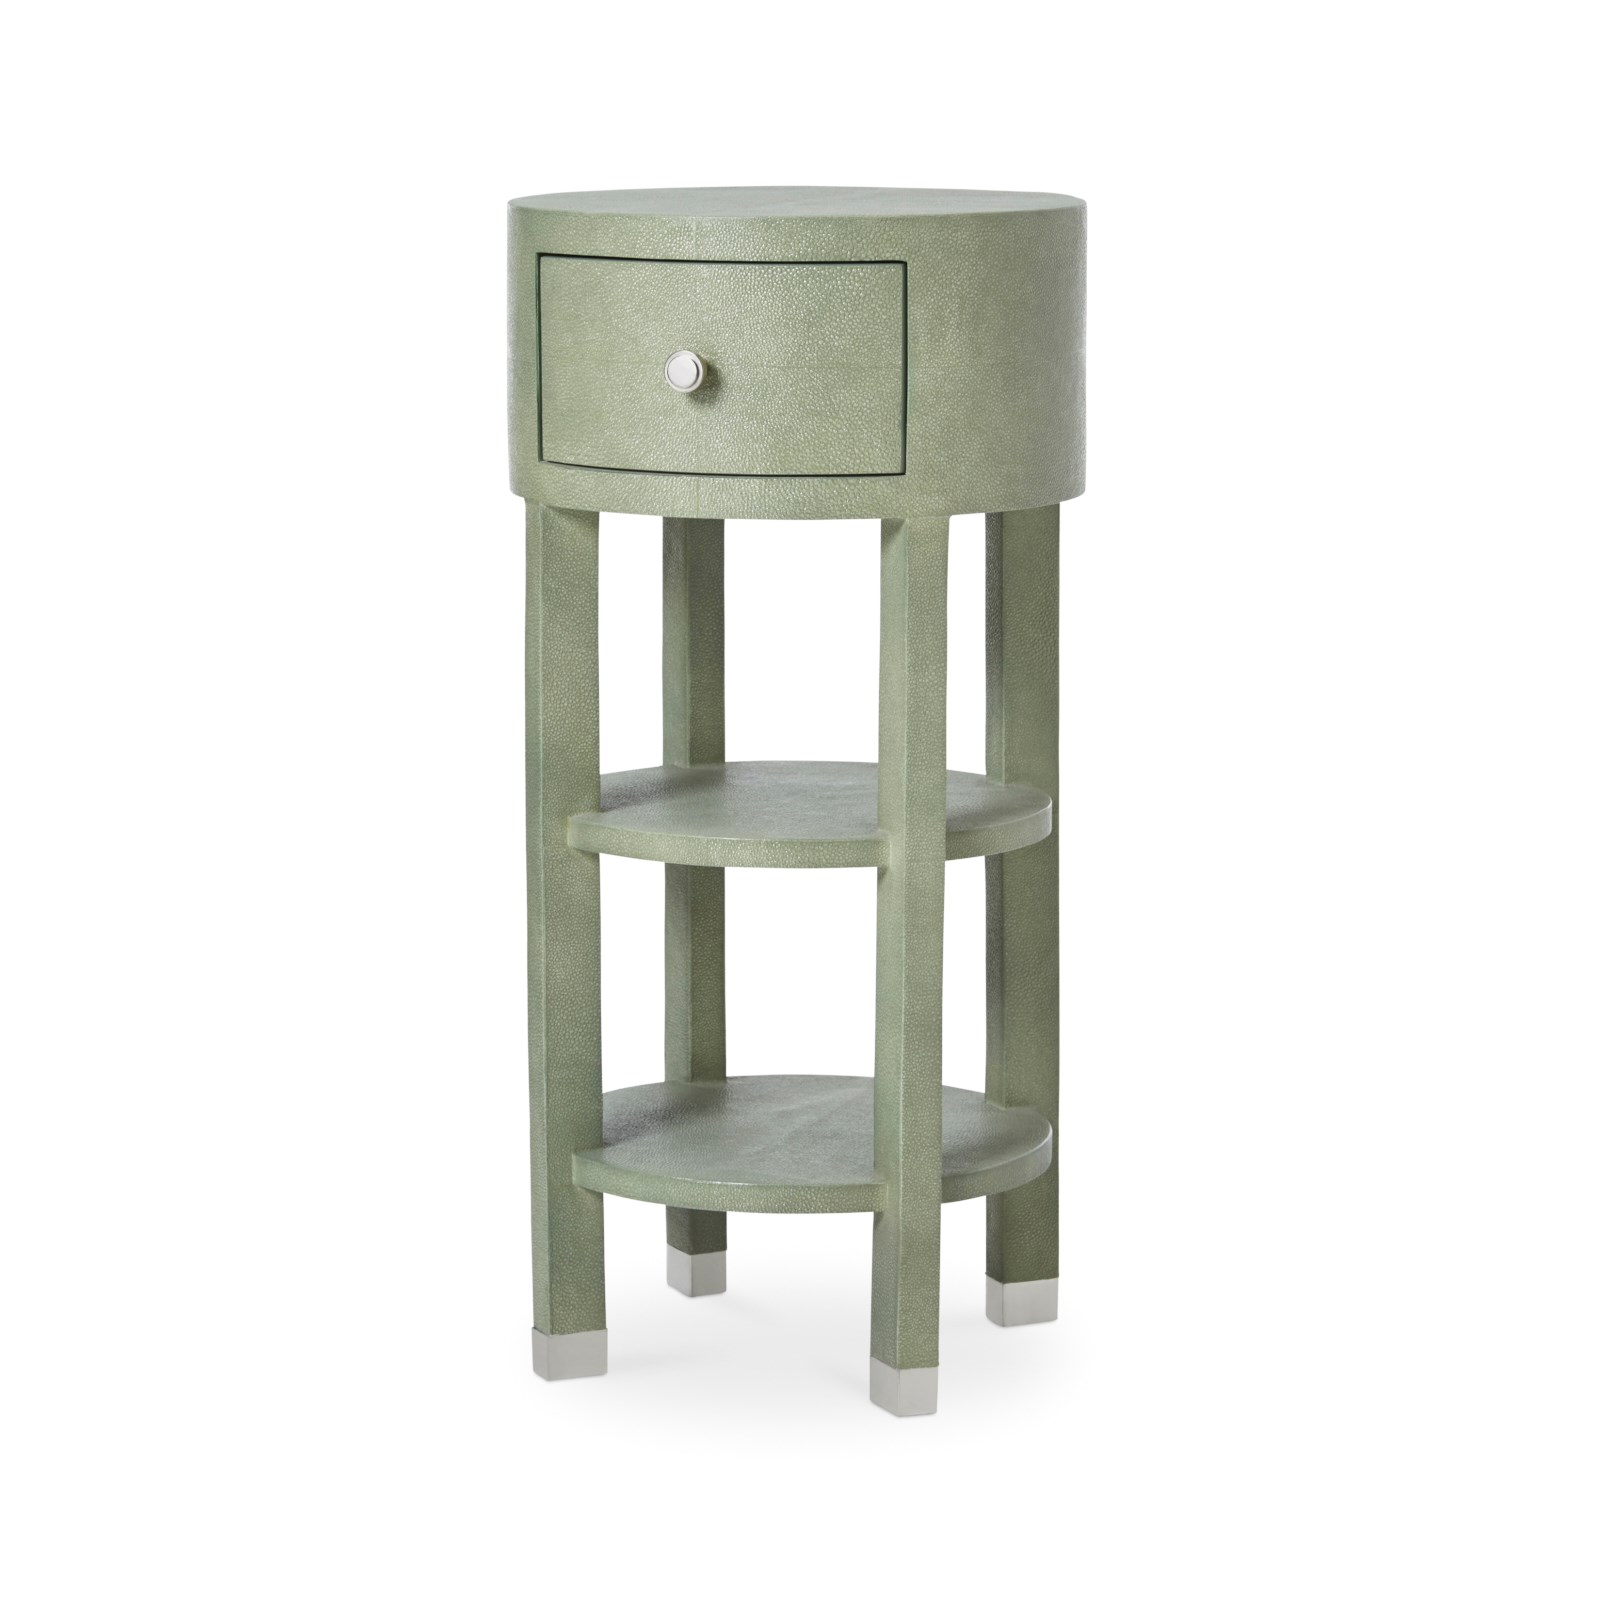 top superb round nightstand with drawer bedside cabinet small accent table white pedestal side end designs design black lace runner concrete nic victorian coffee twisted wood ikea